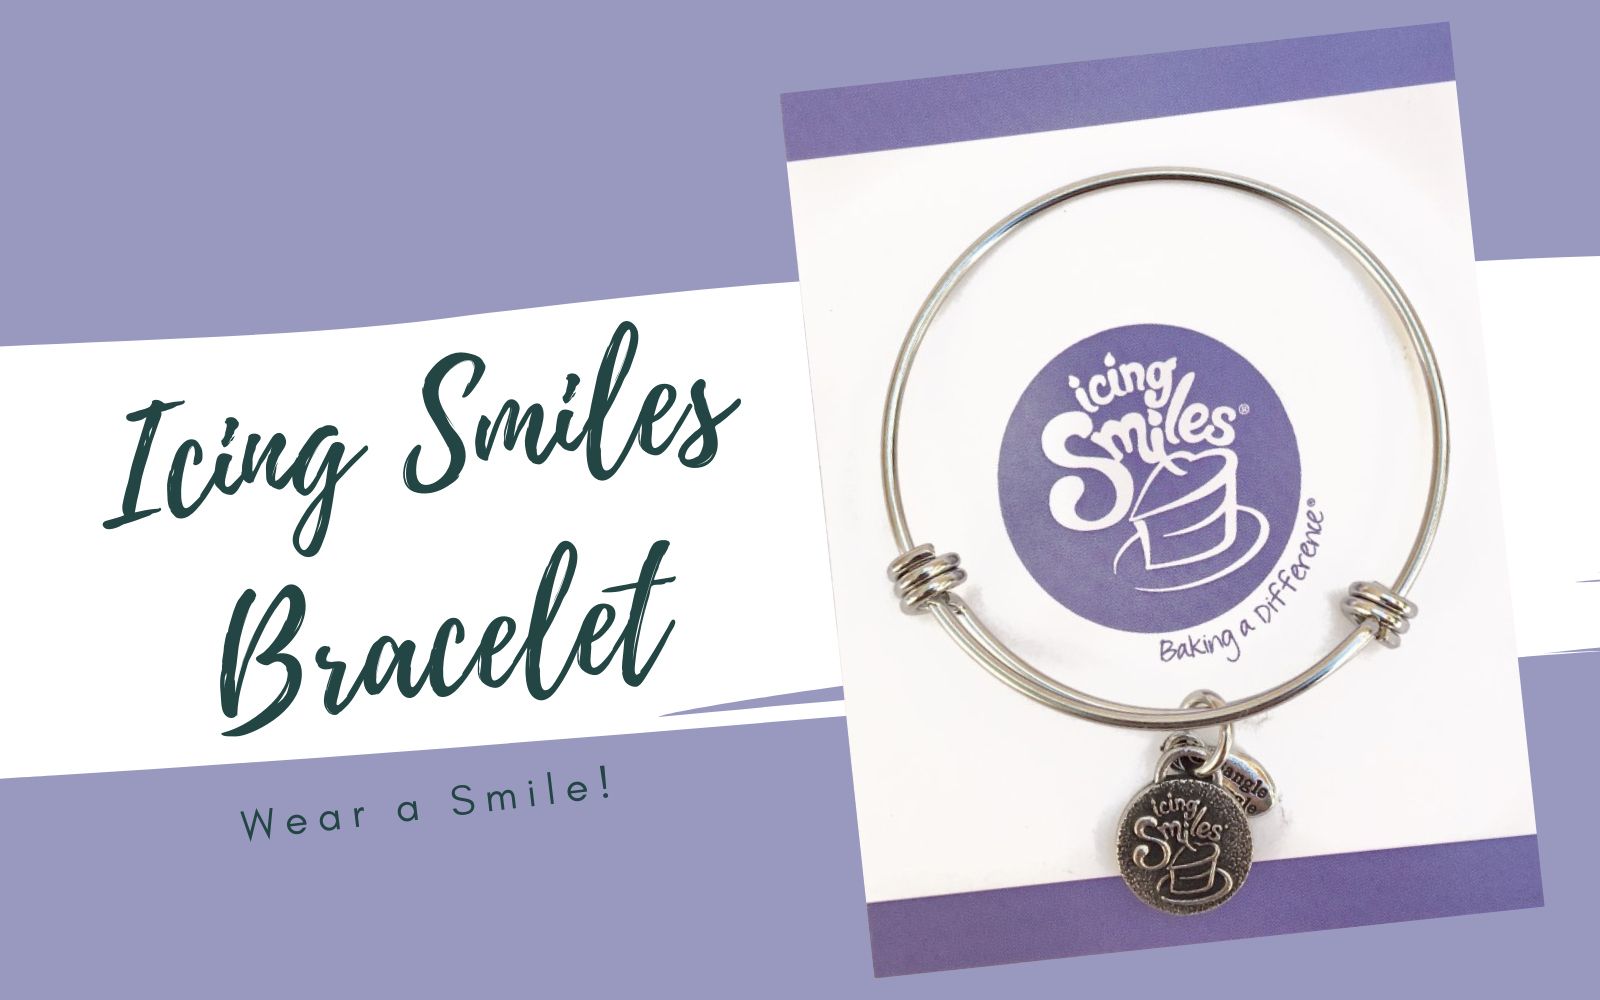 Wear a Smile all year long! image